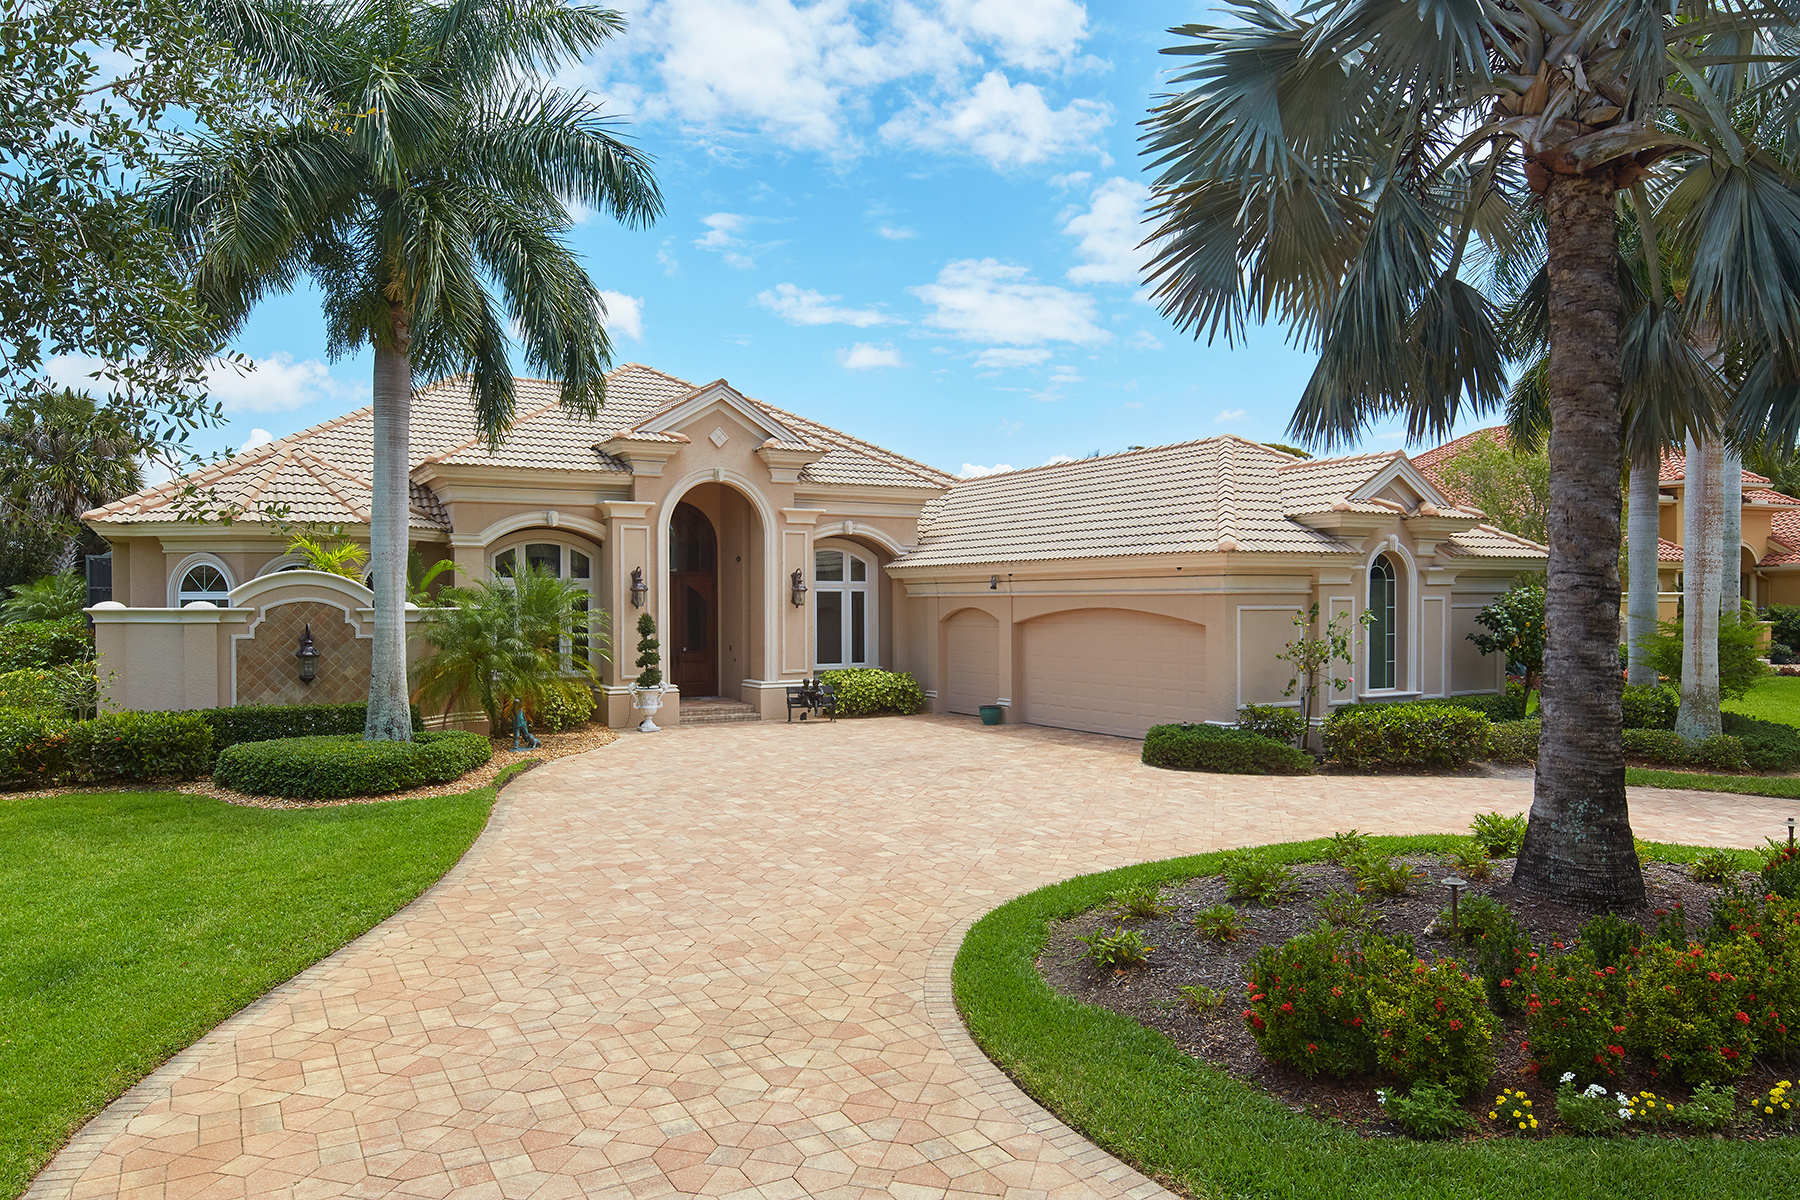 single family homes for Active at SHADOW WOOD AT THE THE BROOKS - THE RESERVE 22081 Reserve Estates Drive Estero, Florida 34135 United States